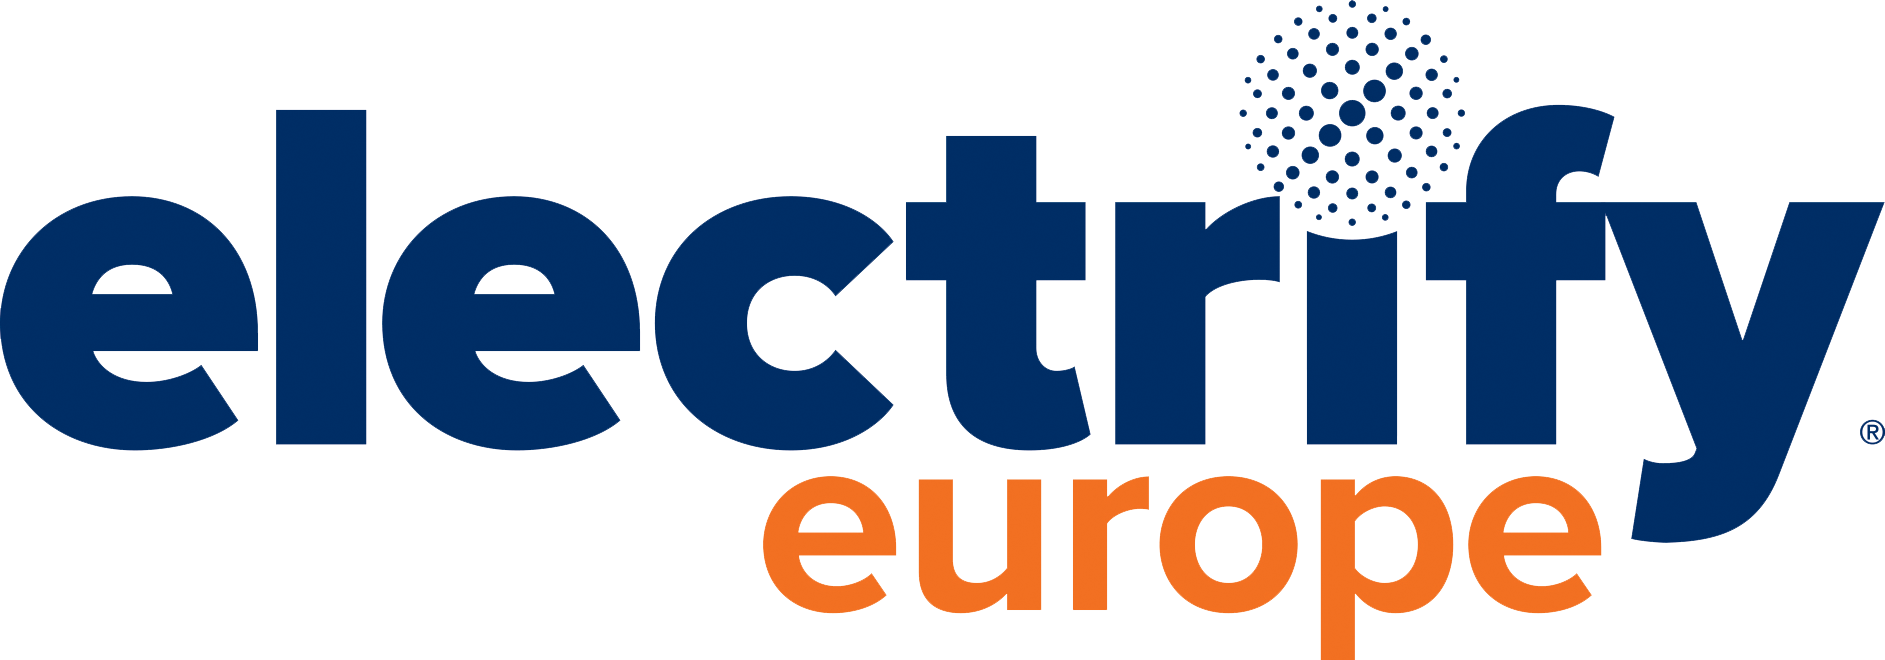 Electrify Europe Expo & Conference, 19-21 Giugno 2018, Vienna, Austria